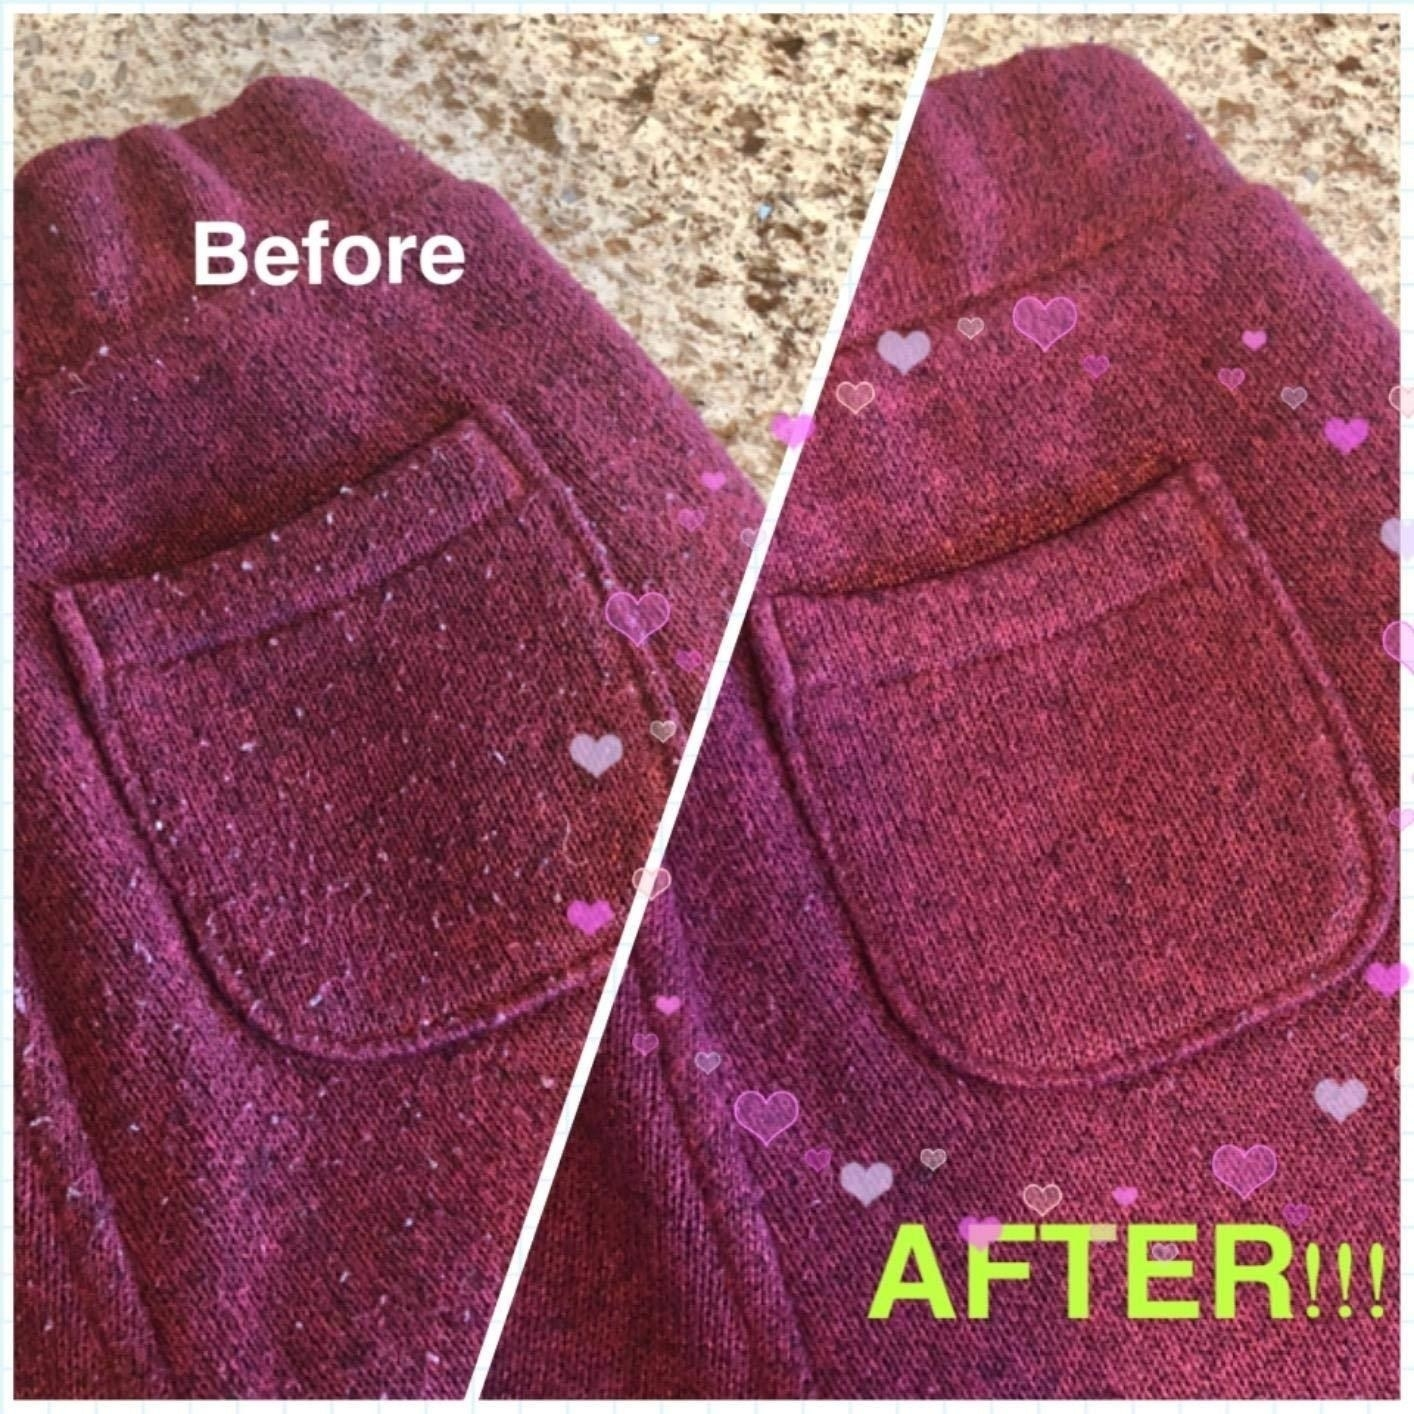 A reviewer's cardigan before: with lots of pills on the front and pocket and after: with no more pills in sight